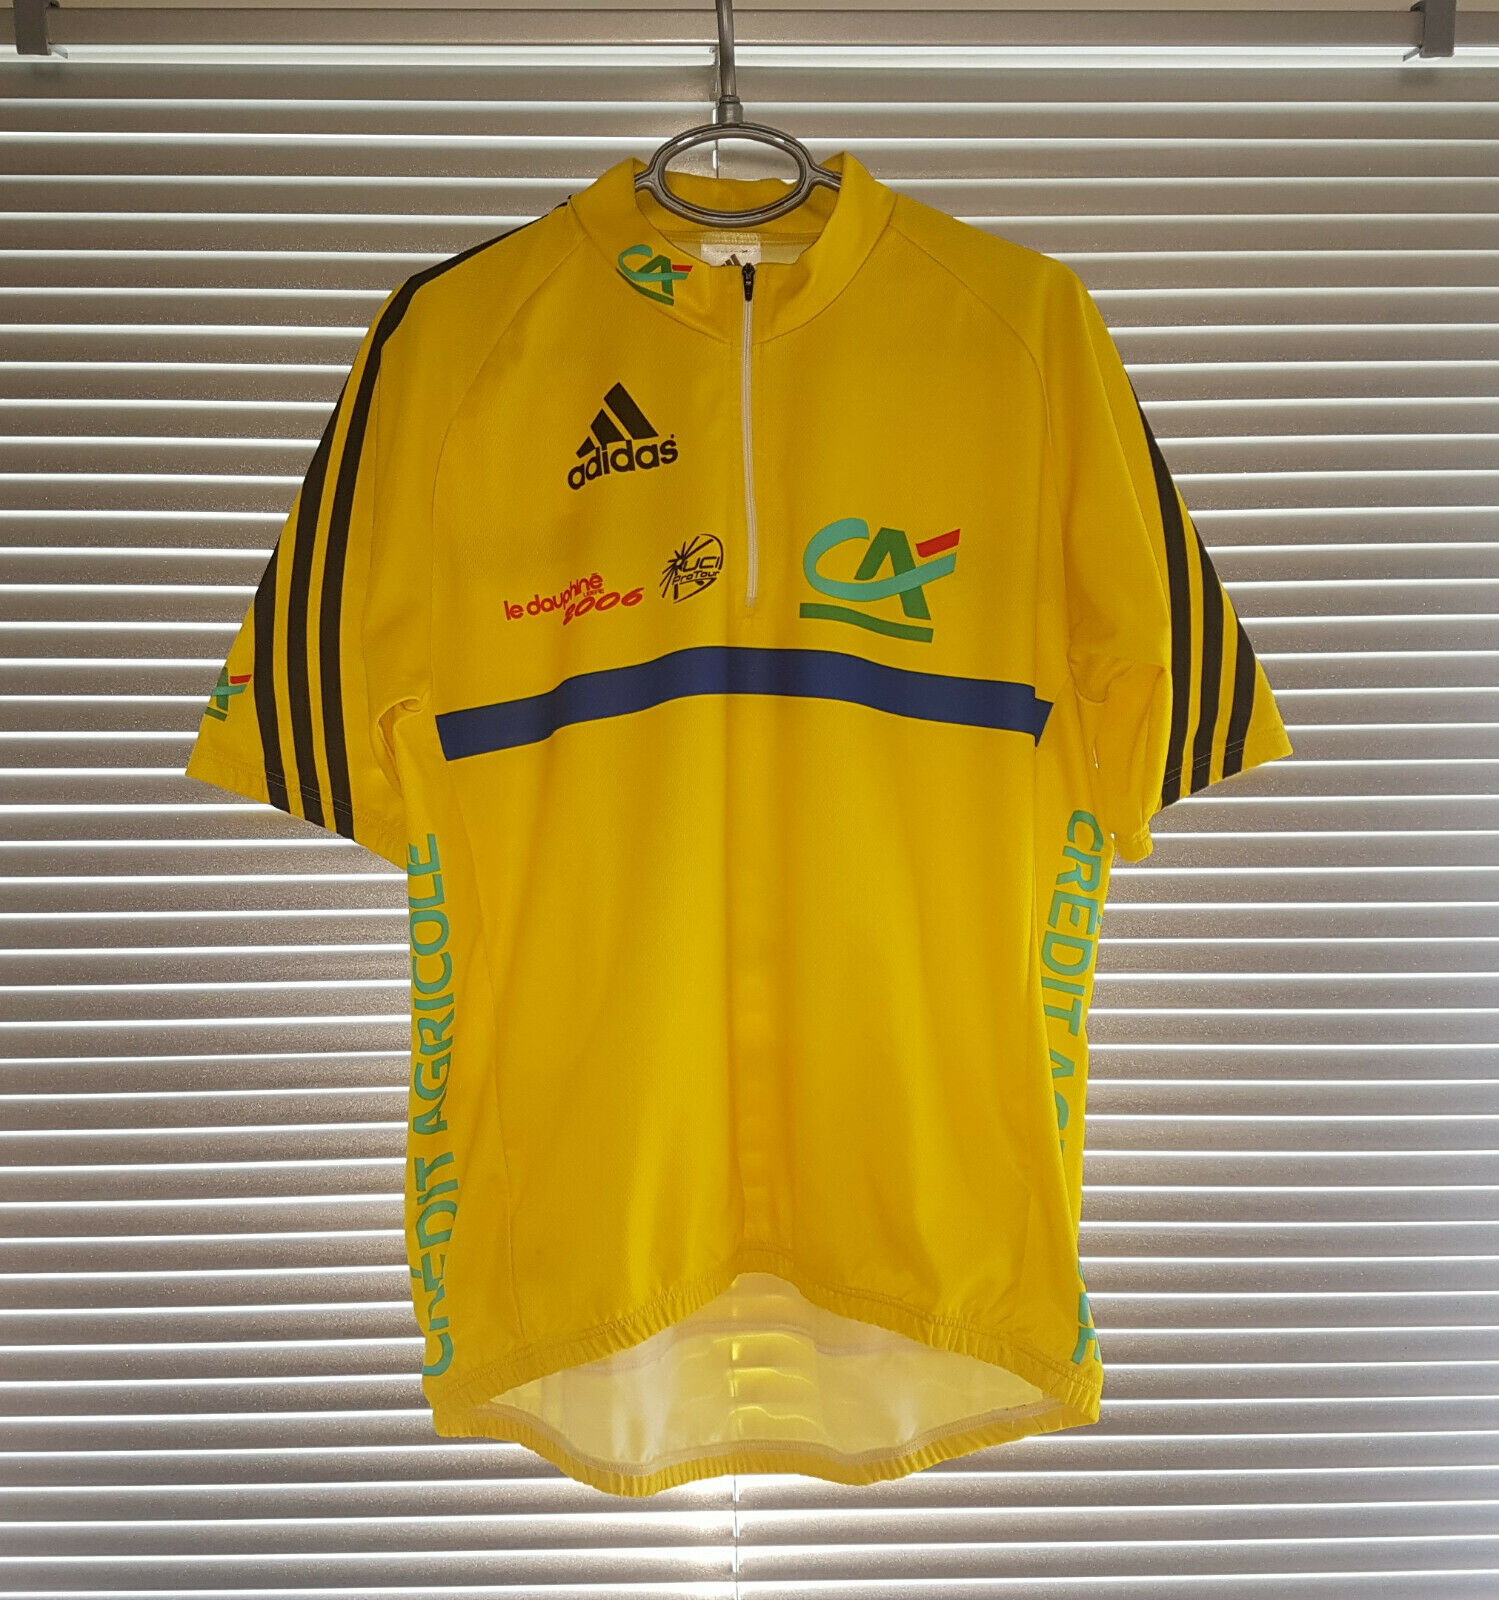 Credit Agricole La Dauphine  2006 Adidas Jersey Yellow Men Size XL  discounts and more